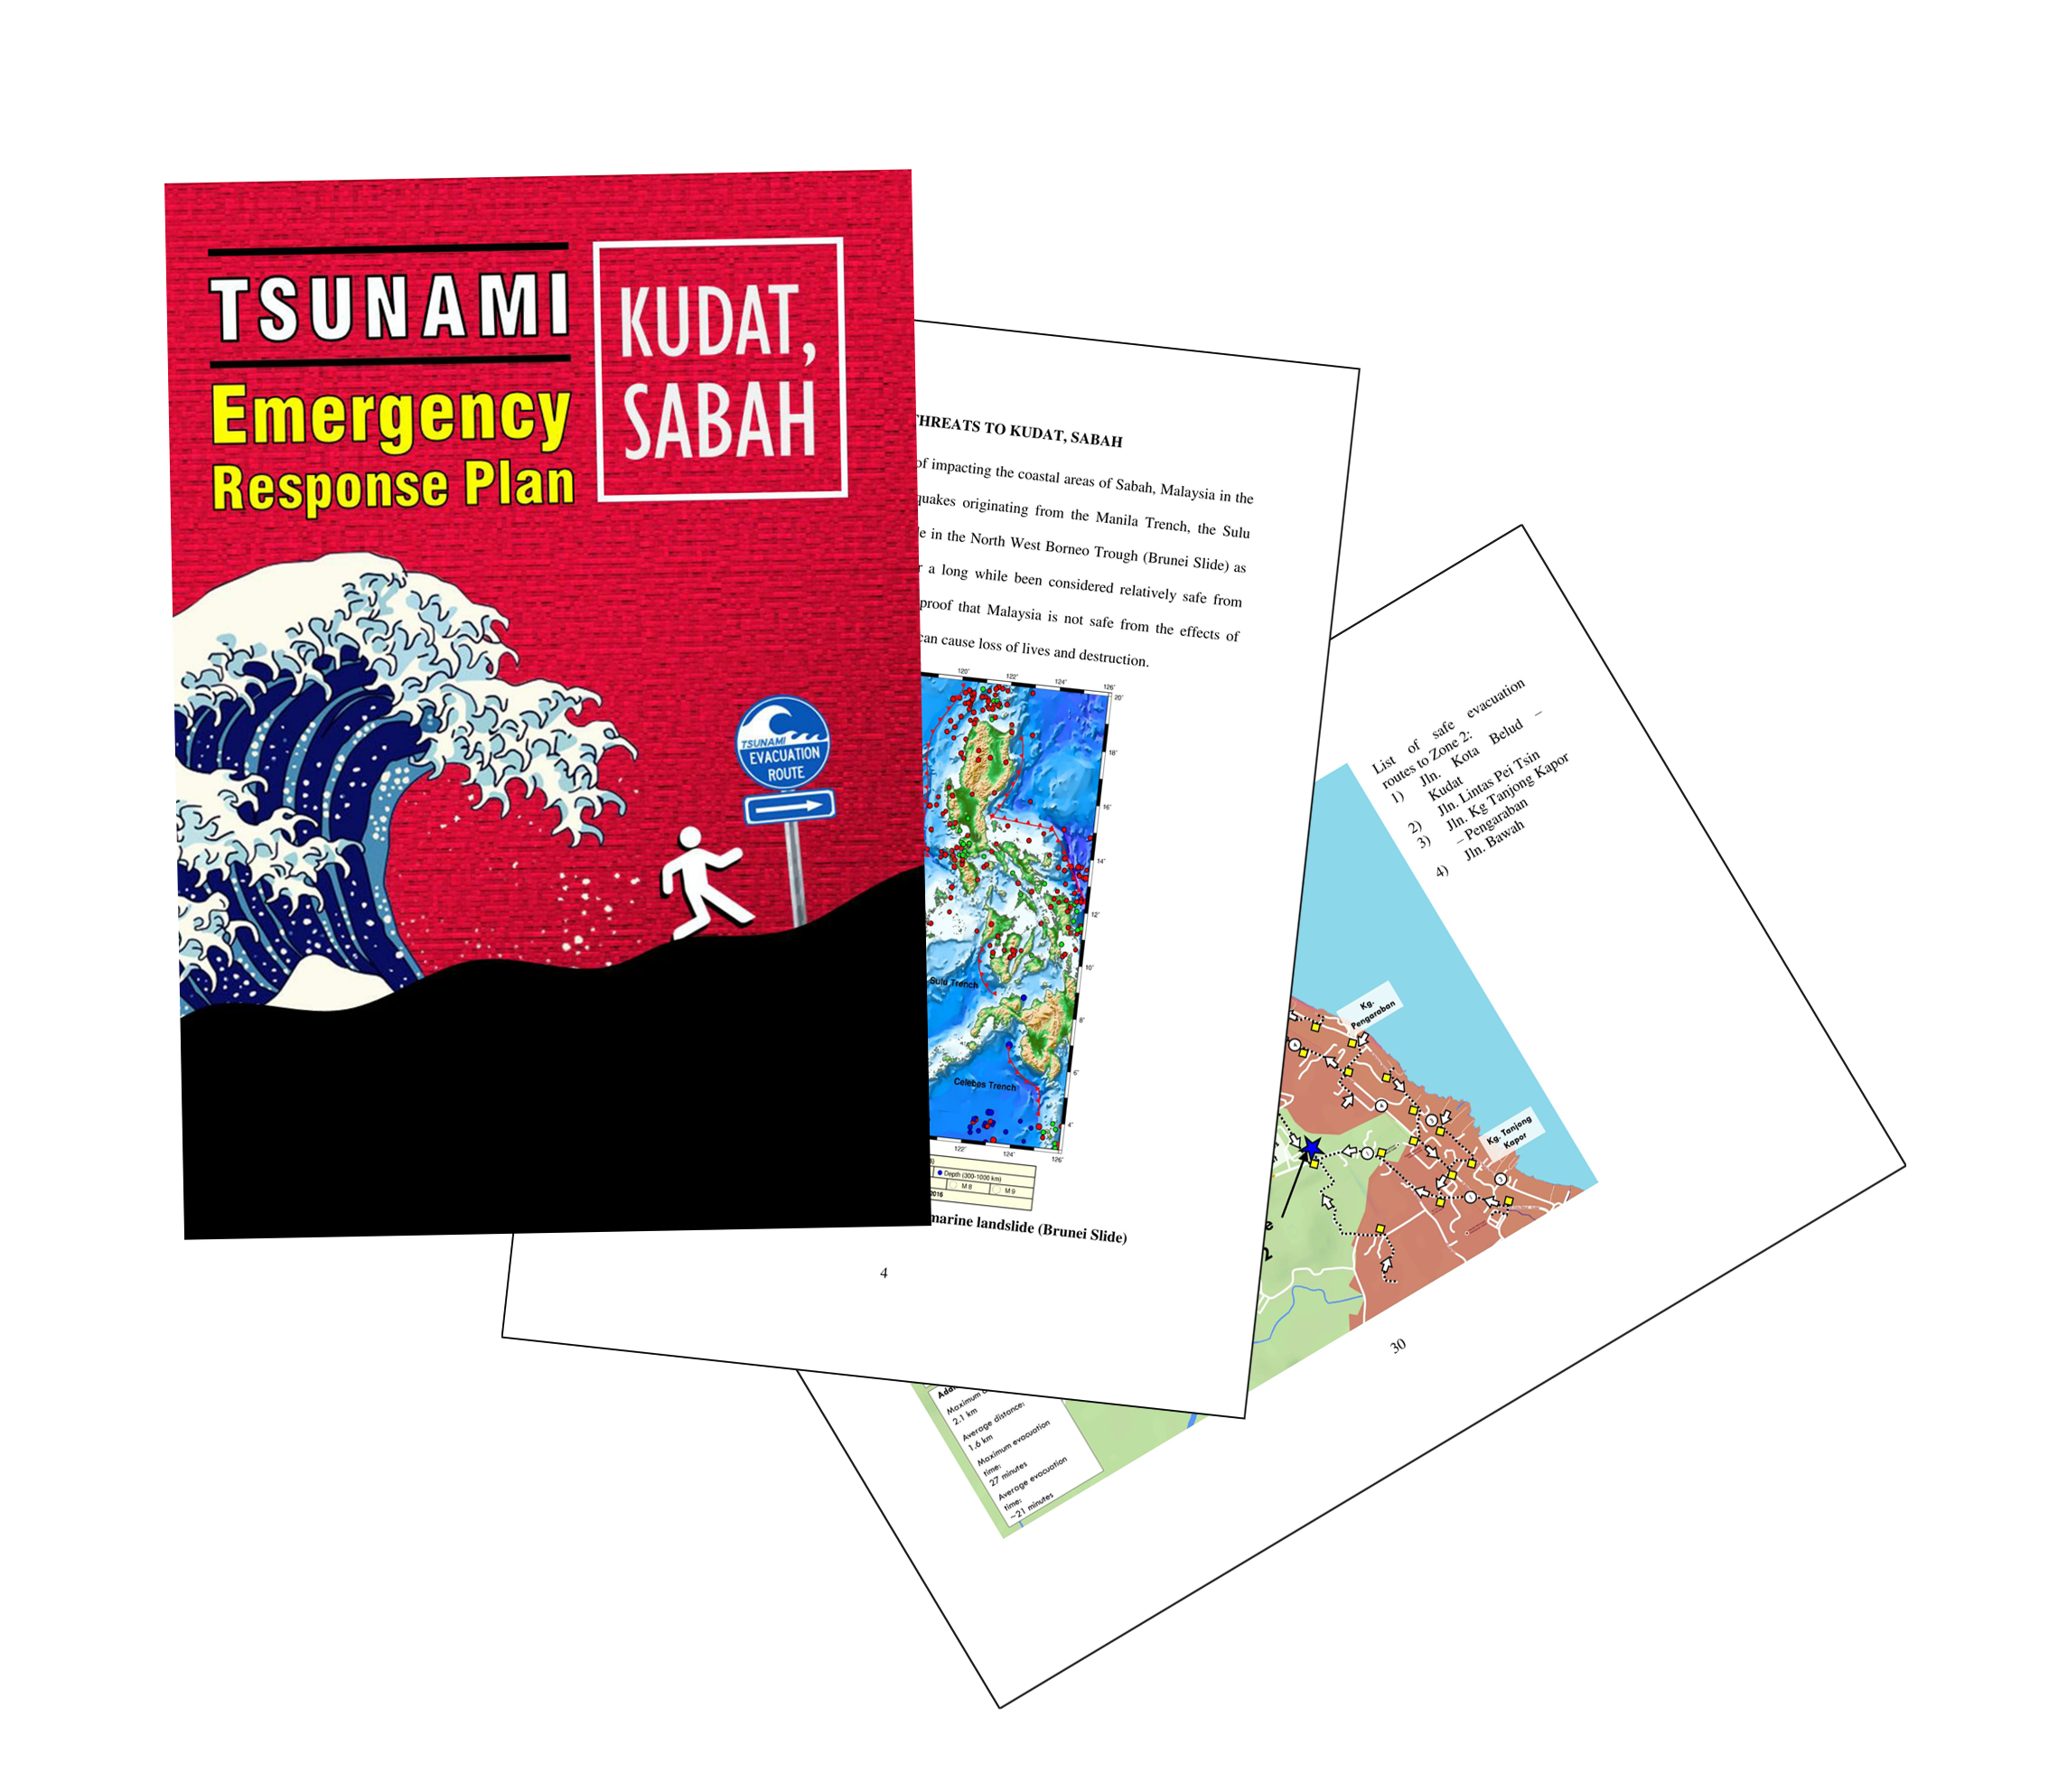 Tsunami Emergency Response Plan (TERP) for Kudat, Sabah